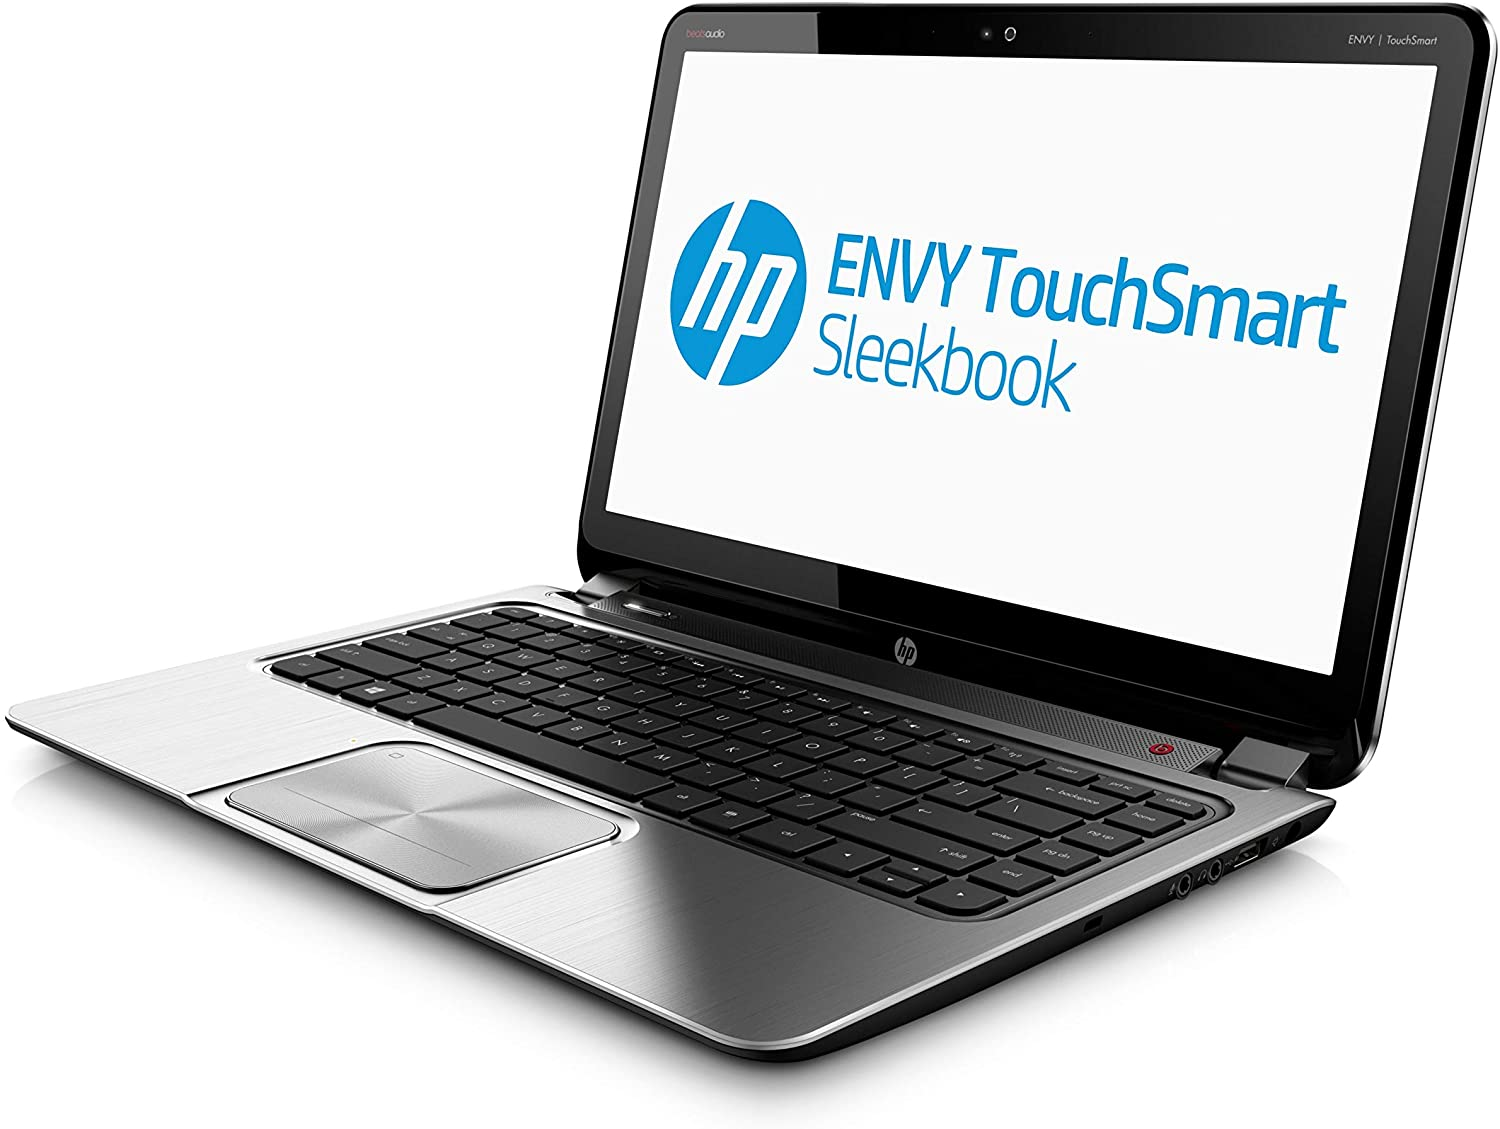 HP 14 Envy Ultrabook review